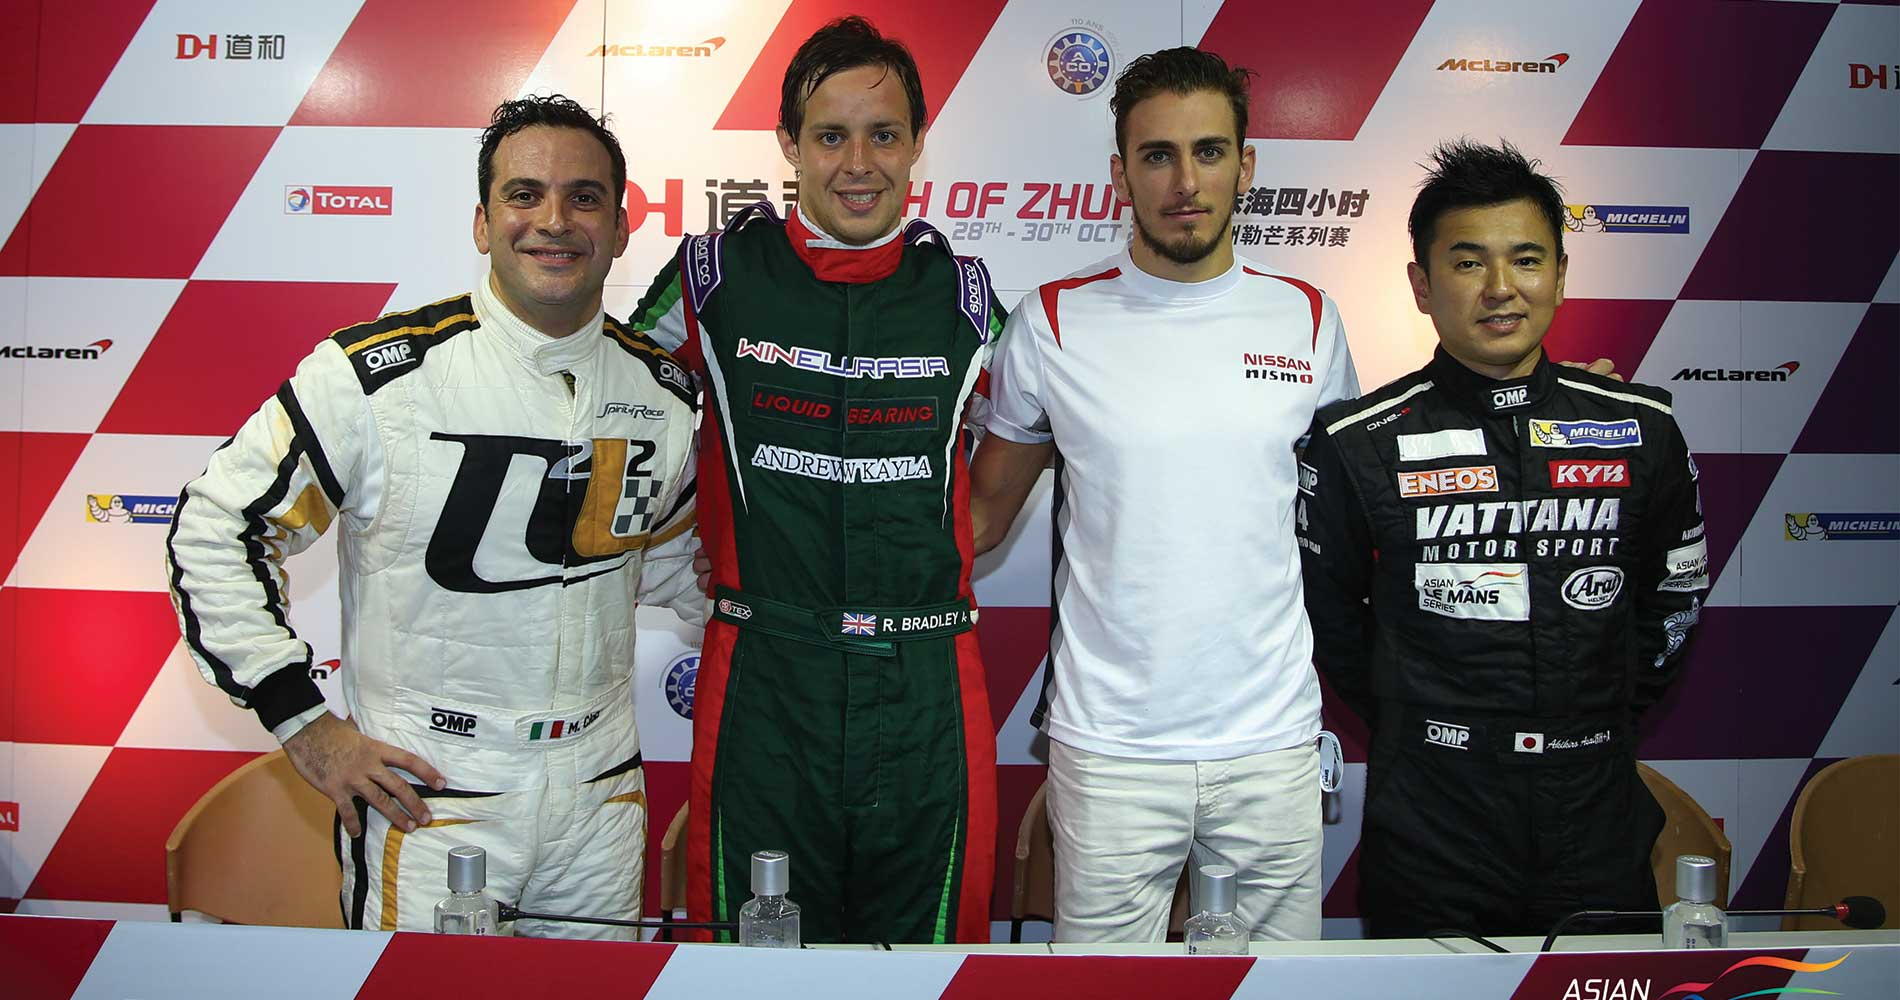 algarve-pro-racing-on-pole-for-the-4-hours-of-zhuhai-29th-oct-2016-motorsportdays-track-days-1